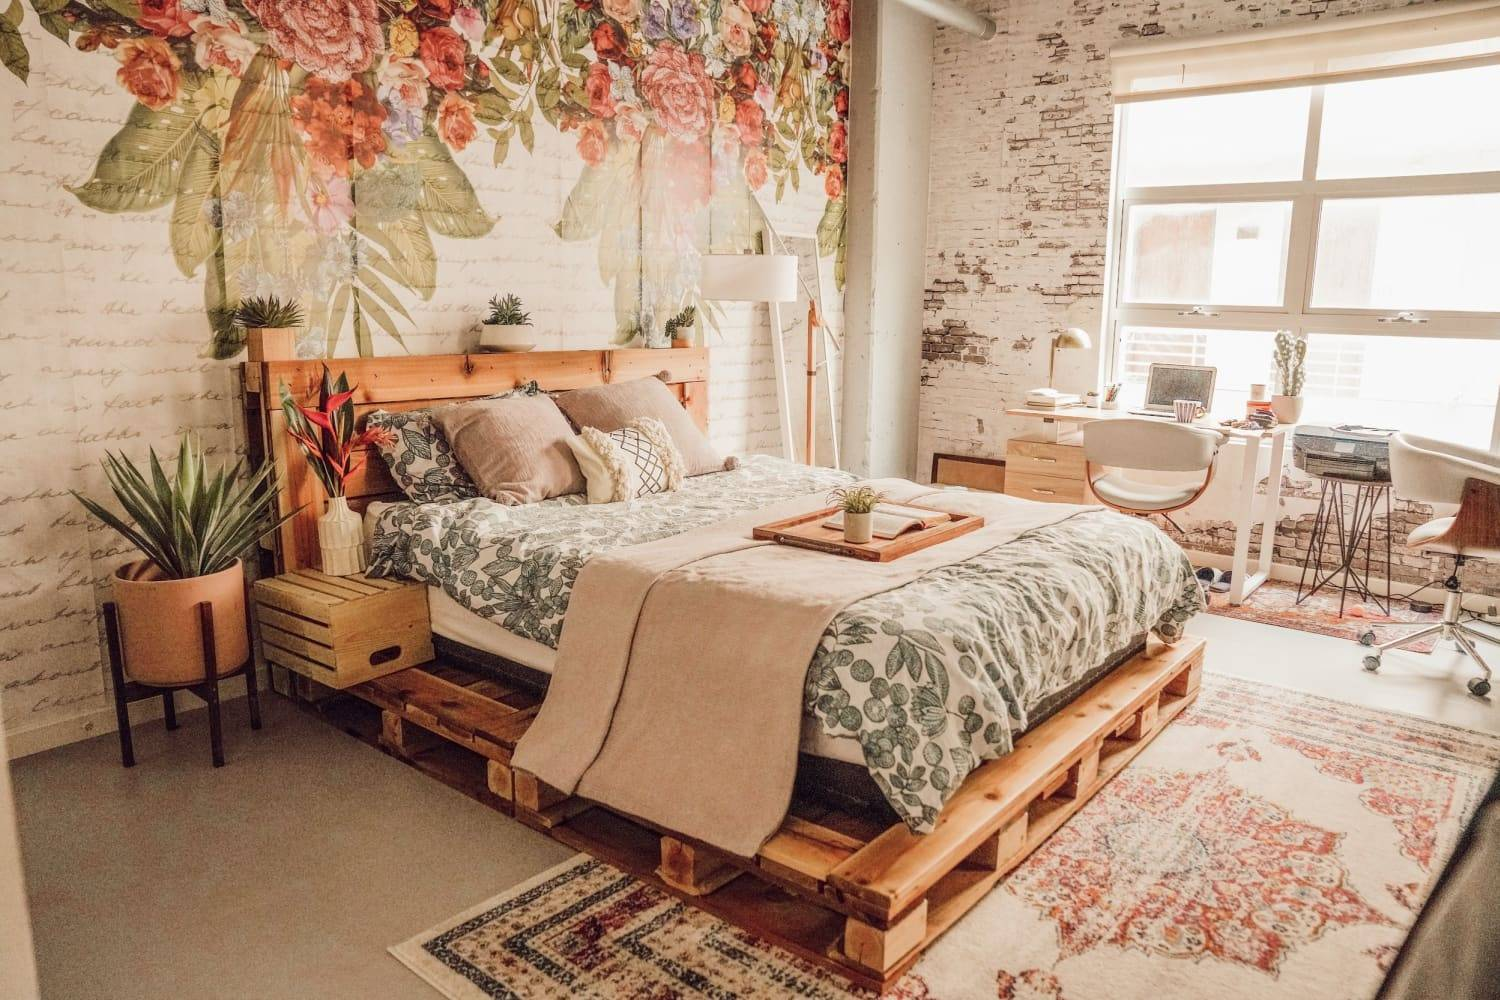 Modern Boho Chic Pallet Bed Floral Wall Art Rustic Area Rug